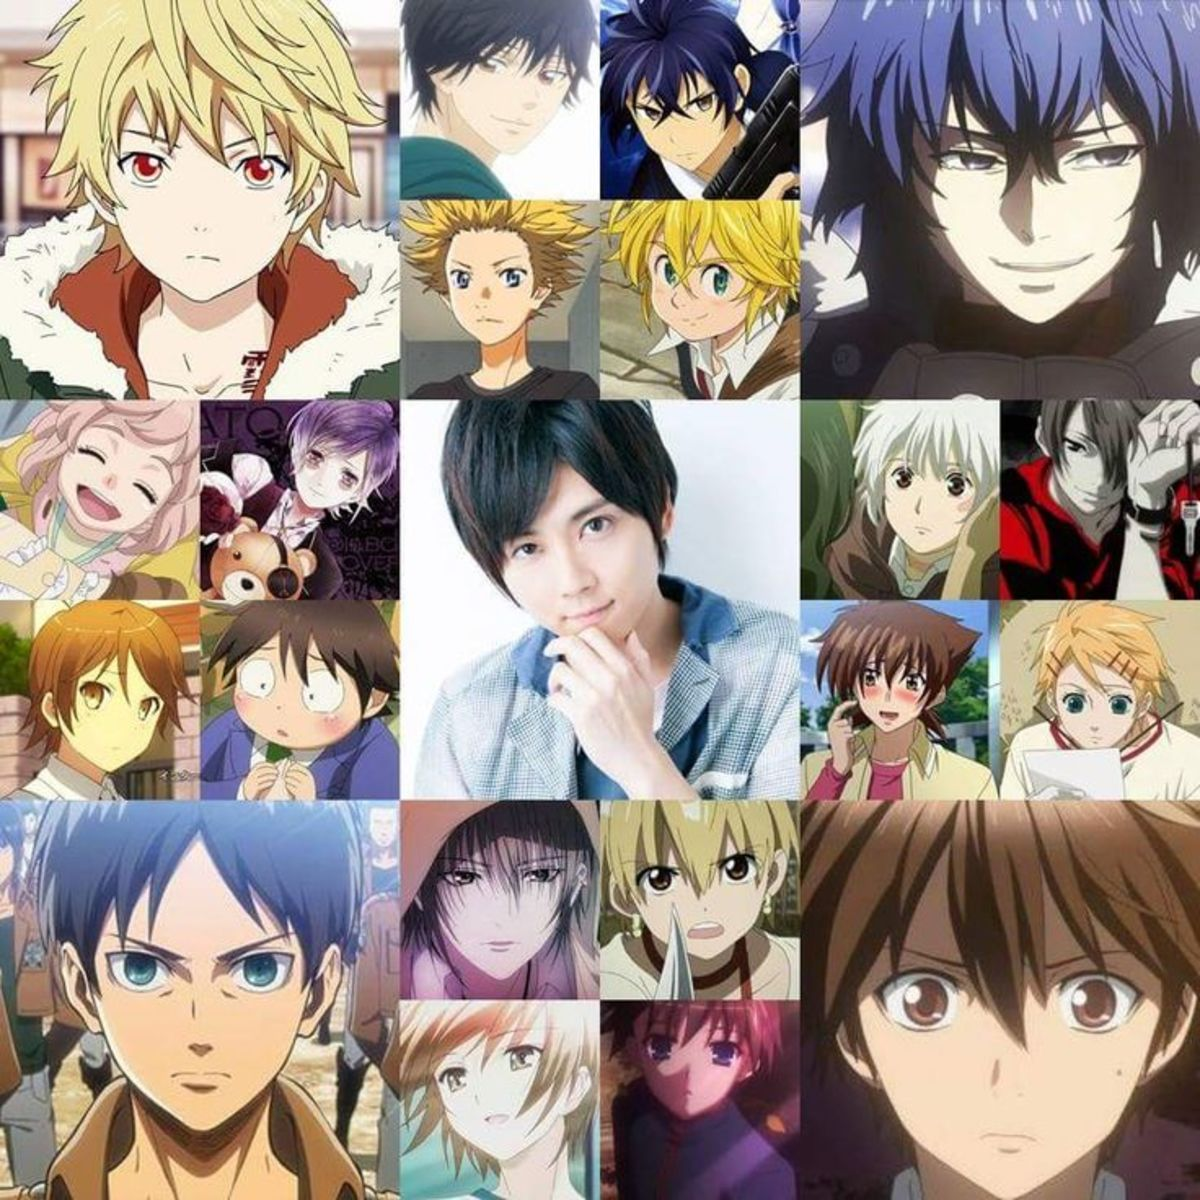 Yuki Kaji's voice actor roles.